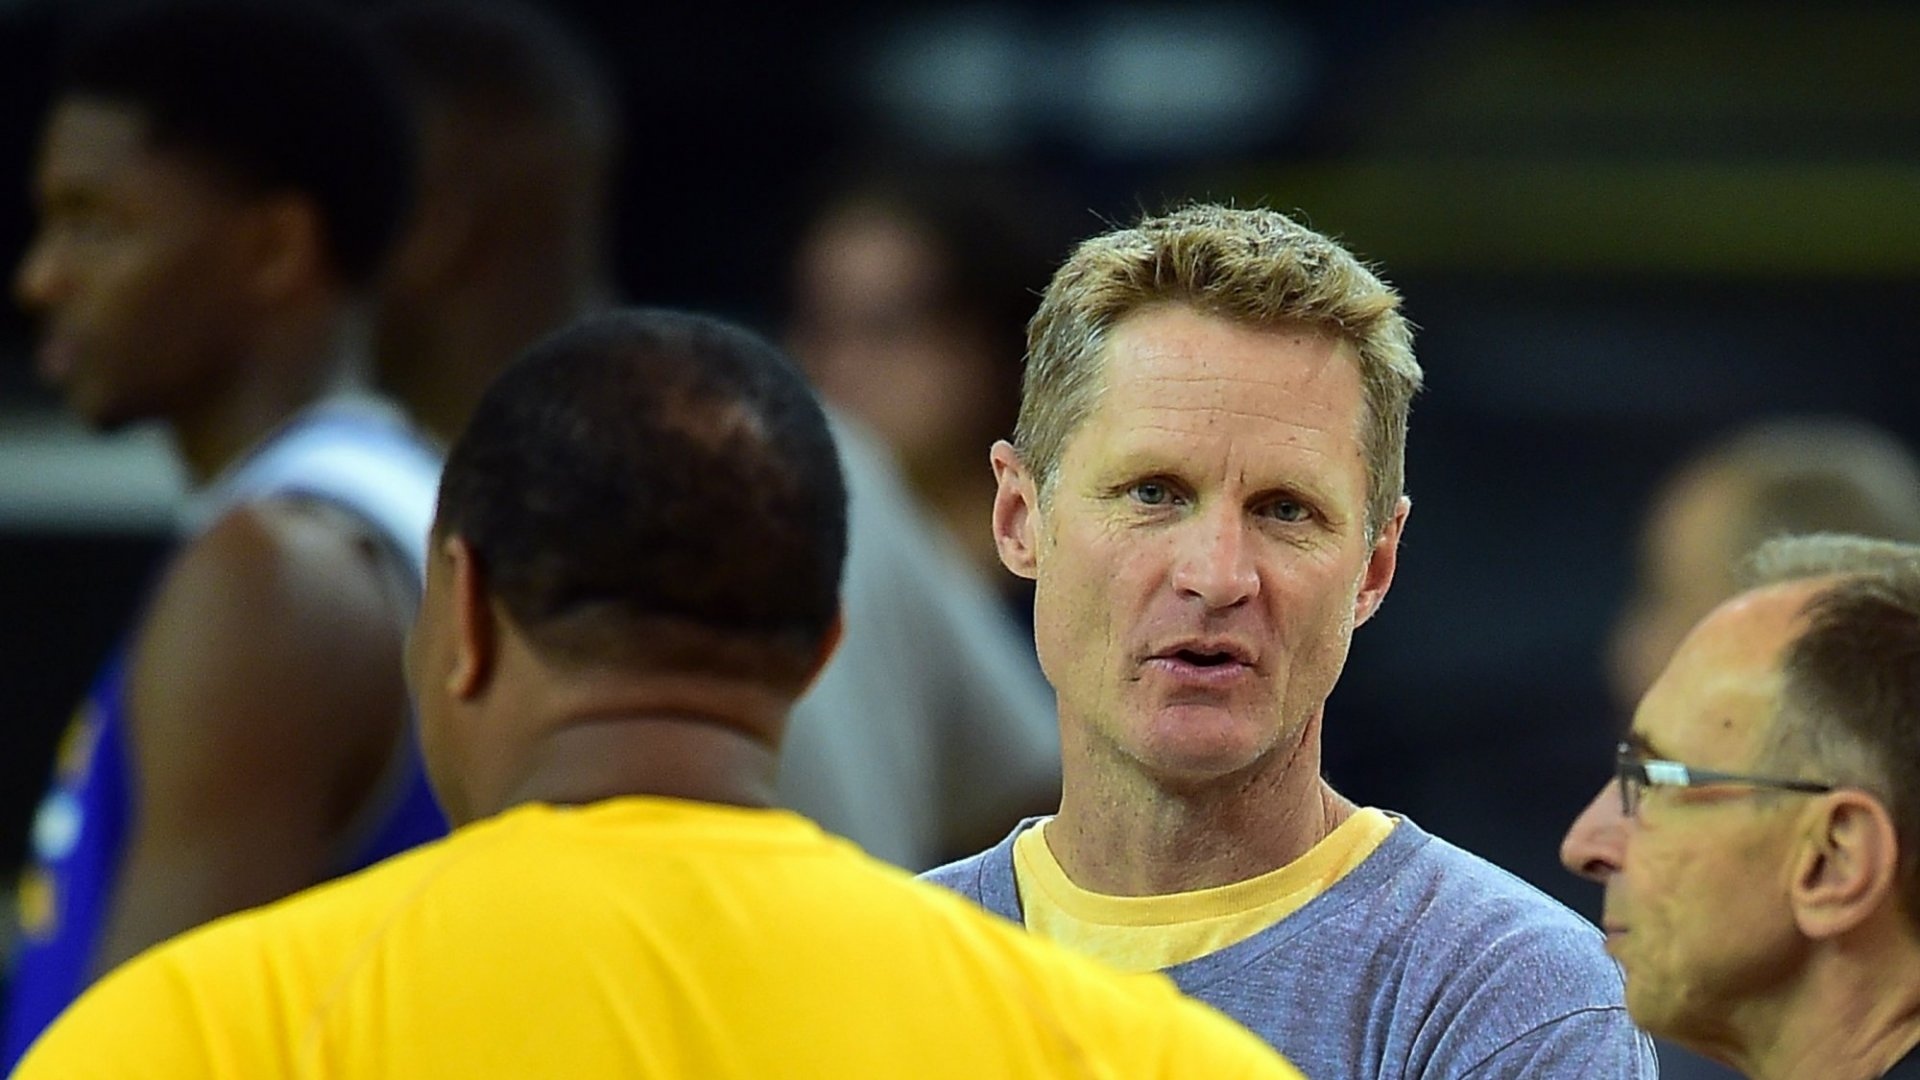 Warriors Coach Steve Kerr Just Showed a Completely Different Side of Emotional Intelligence